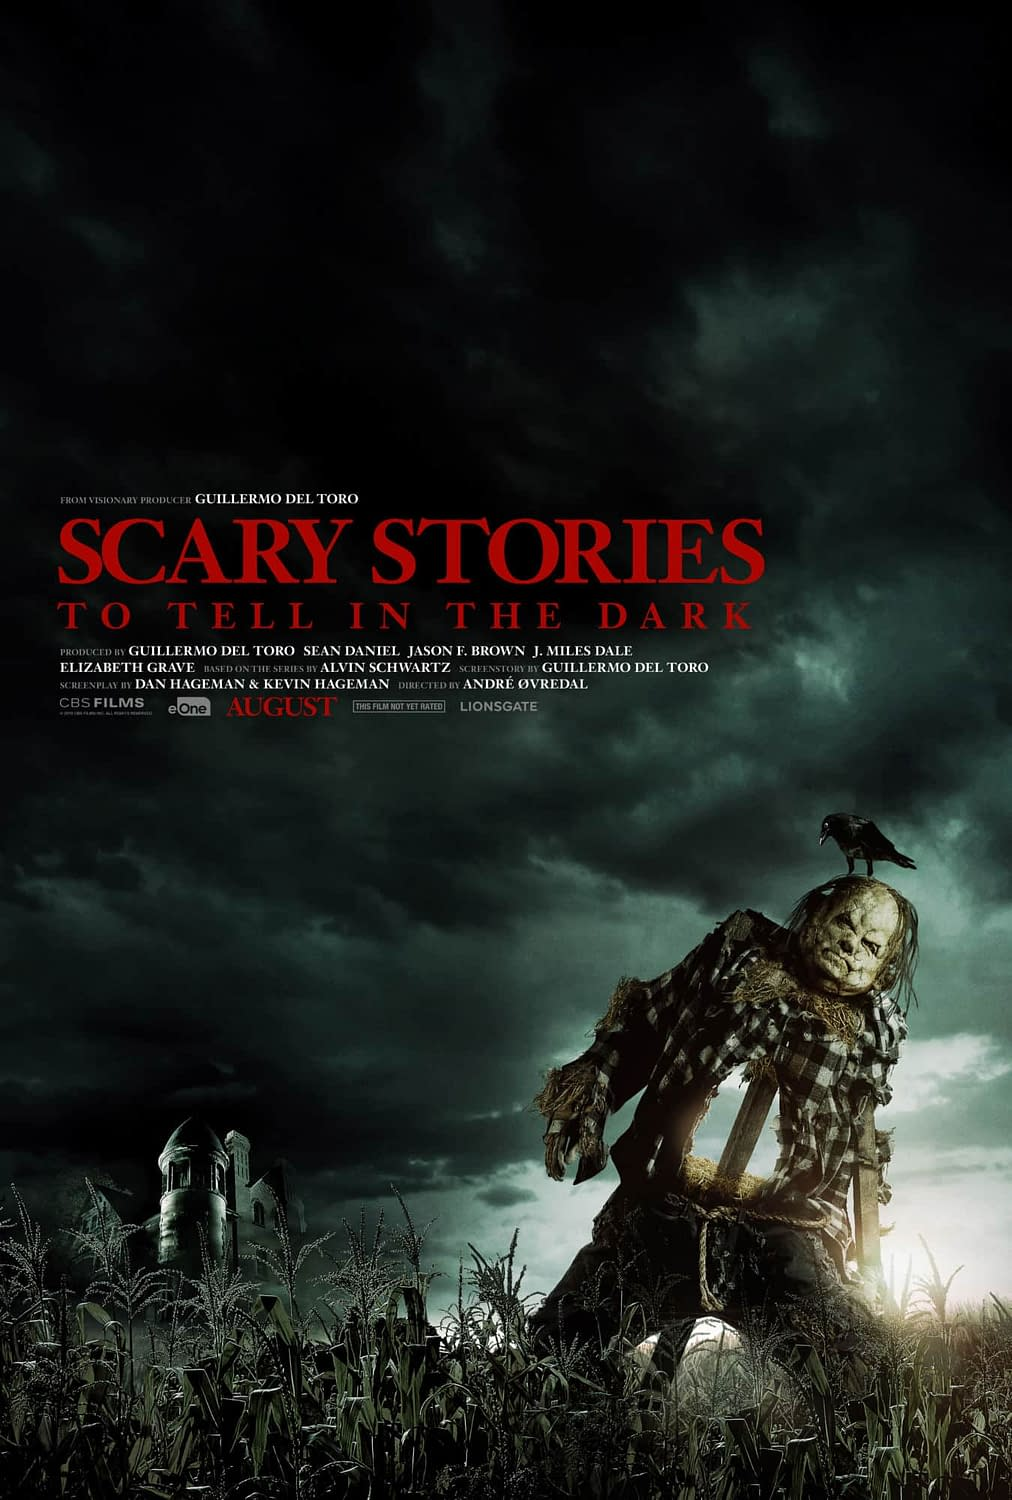 First Teaser Poster for Scary Stories to Tell in the Dark